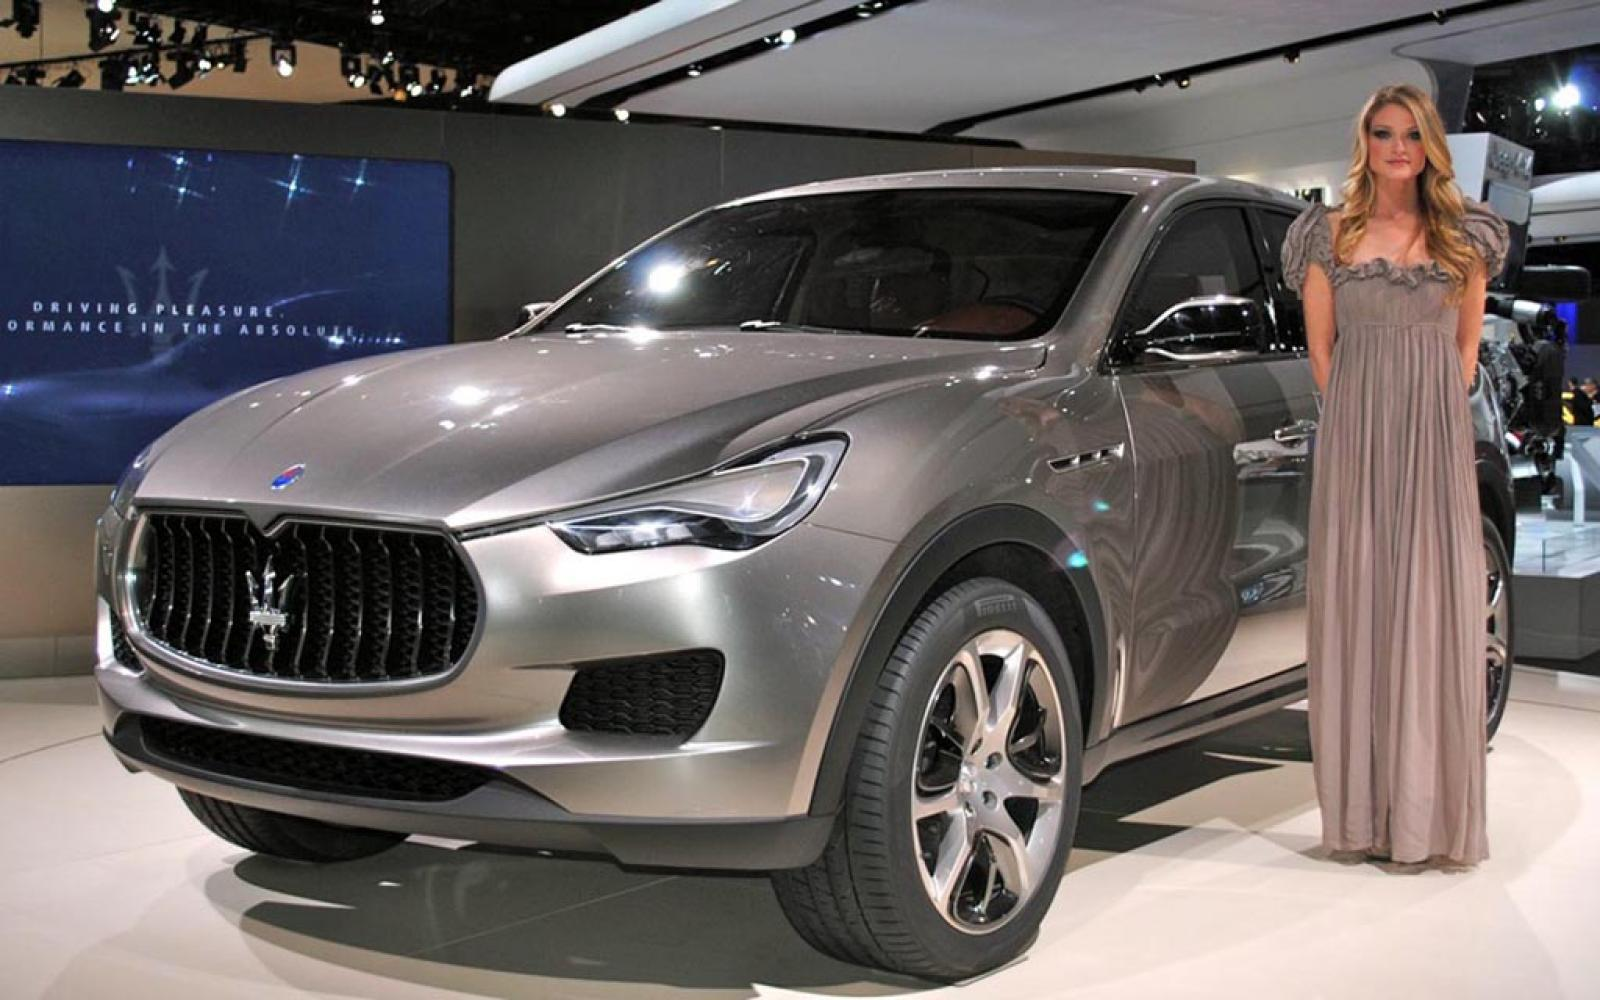 2016 maserati levante information and photos zombiedrive. Black Bedroom Furniture Sets. Home Design Ideas